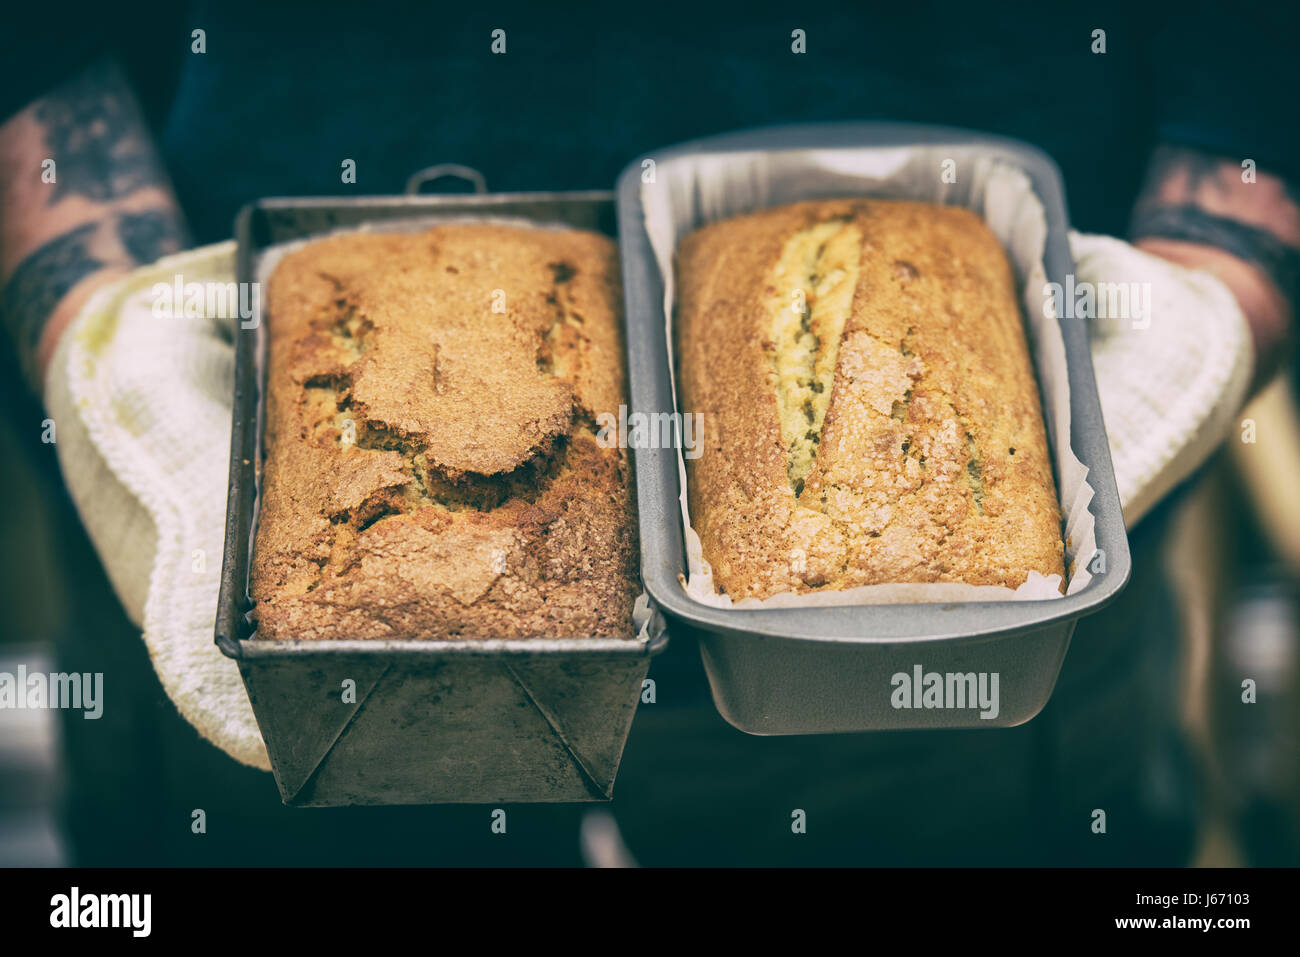 Baked banana cakes of which one is gluten free and the other is a regular bake. Applied vintage filter - Stock Image